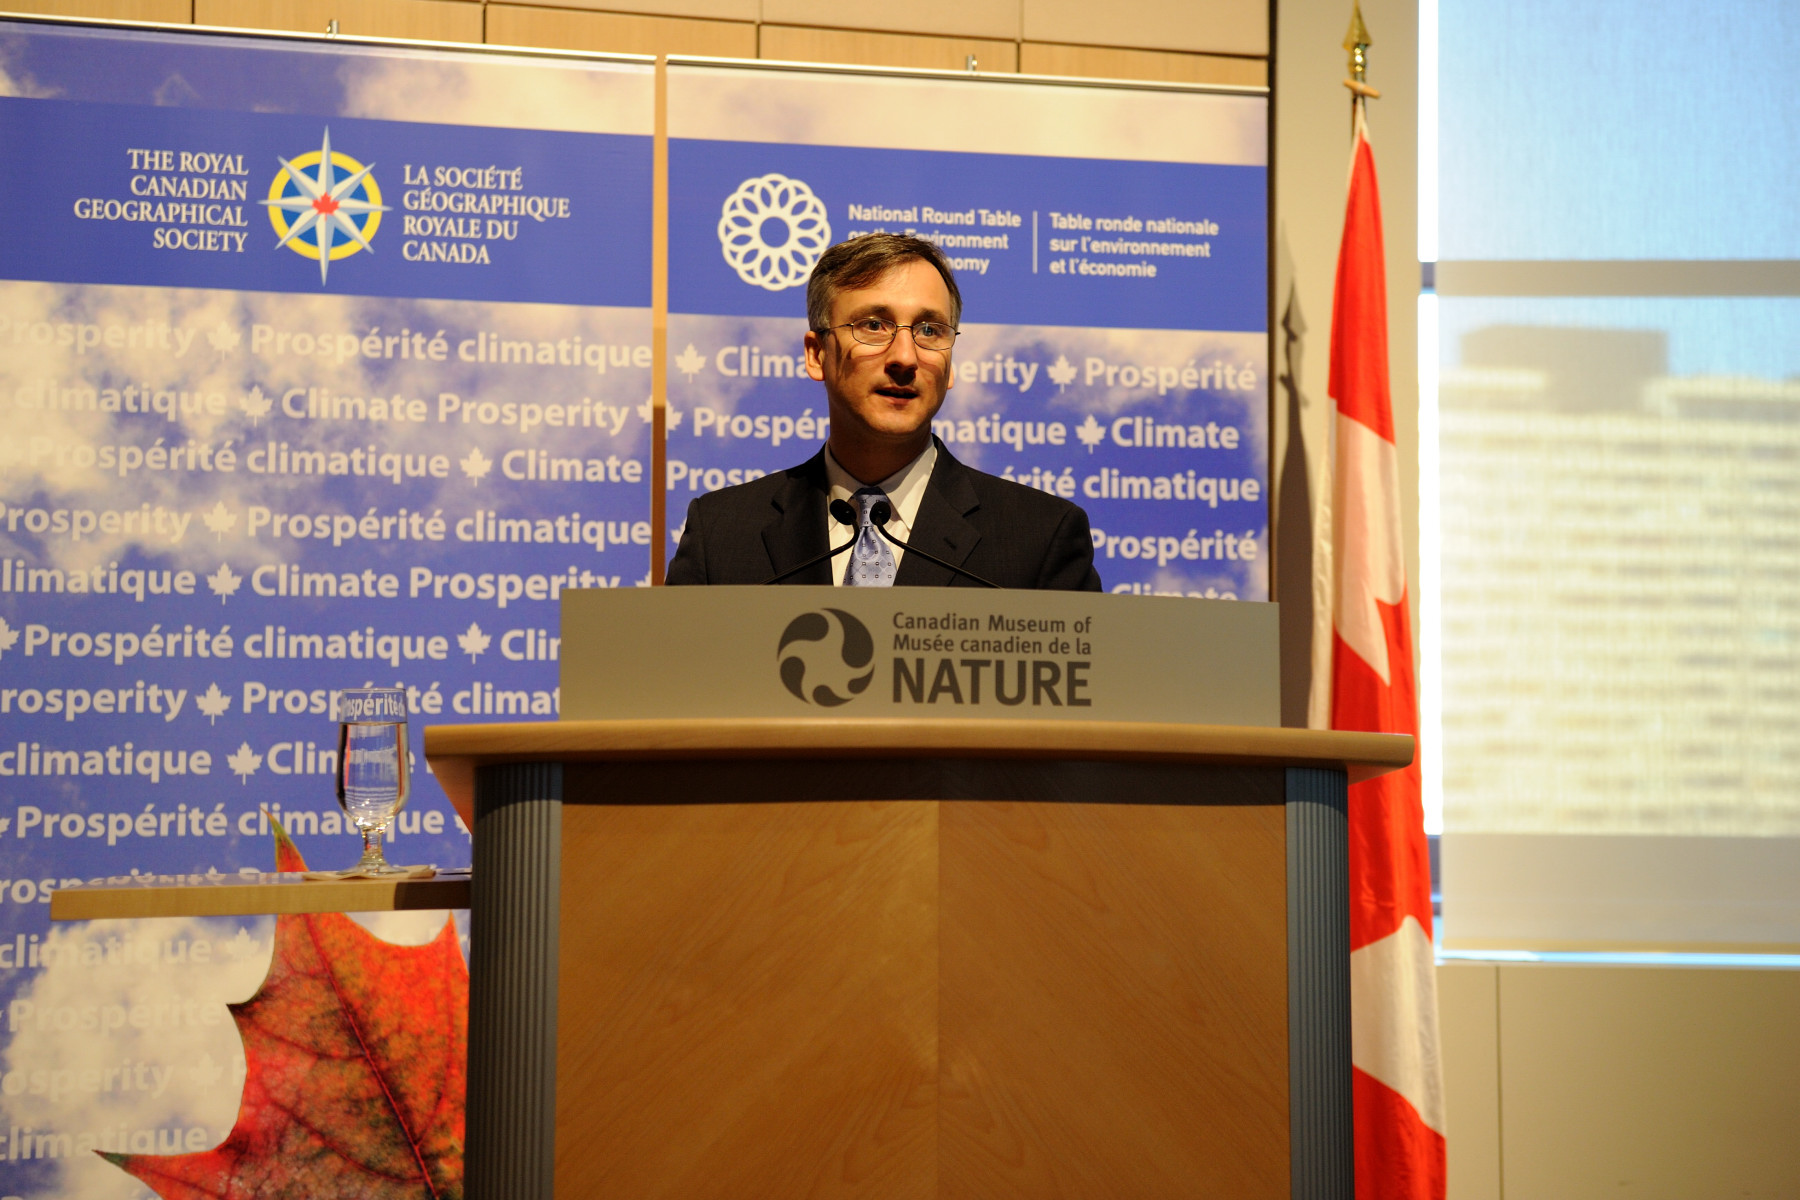 Mr. Bernard Lord was the MC of the event celebrating a new collaborative project on the impacts of climate change on Canada by the National Round Table on the Environment and the Economy and the Royal Canadian Geographical Society.